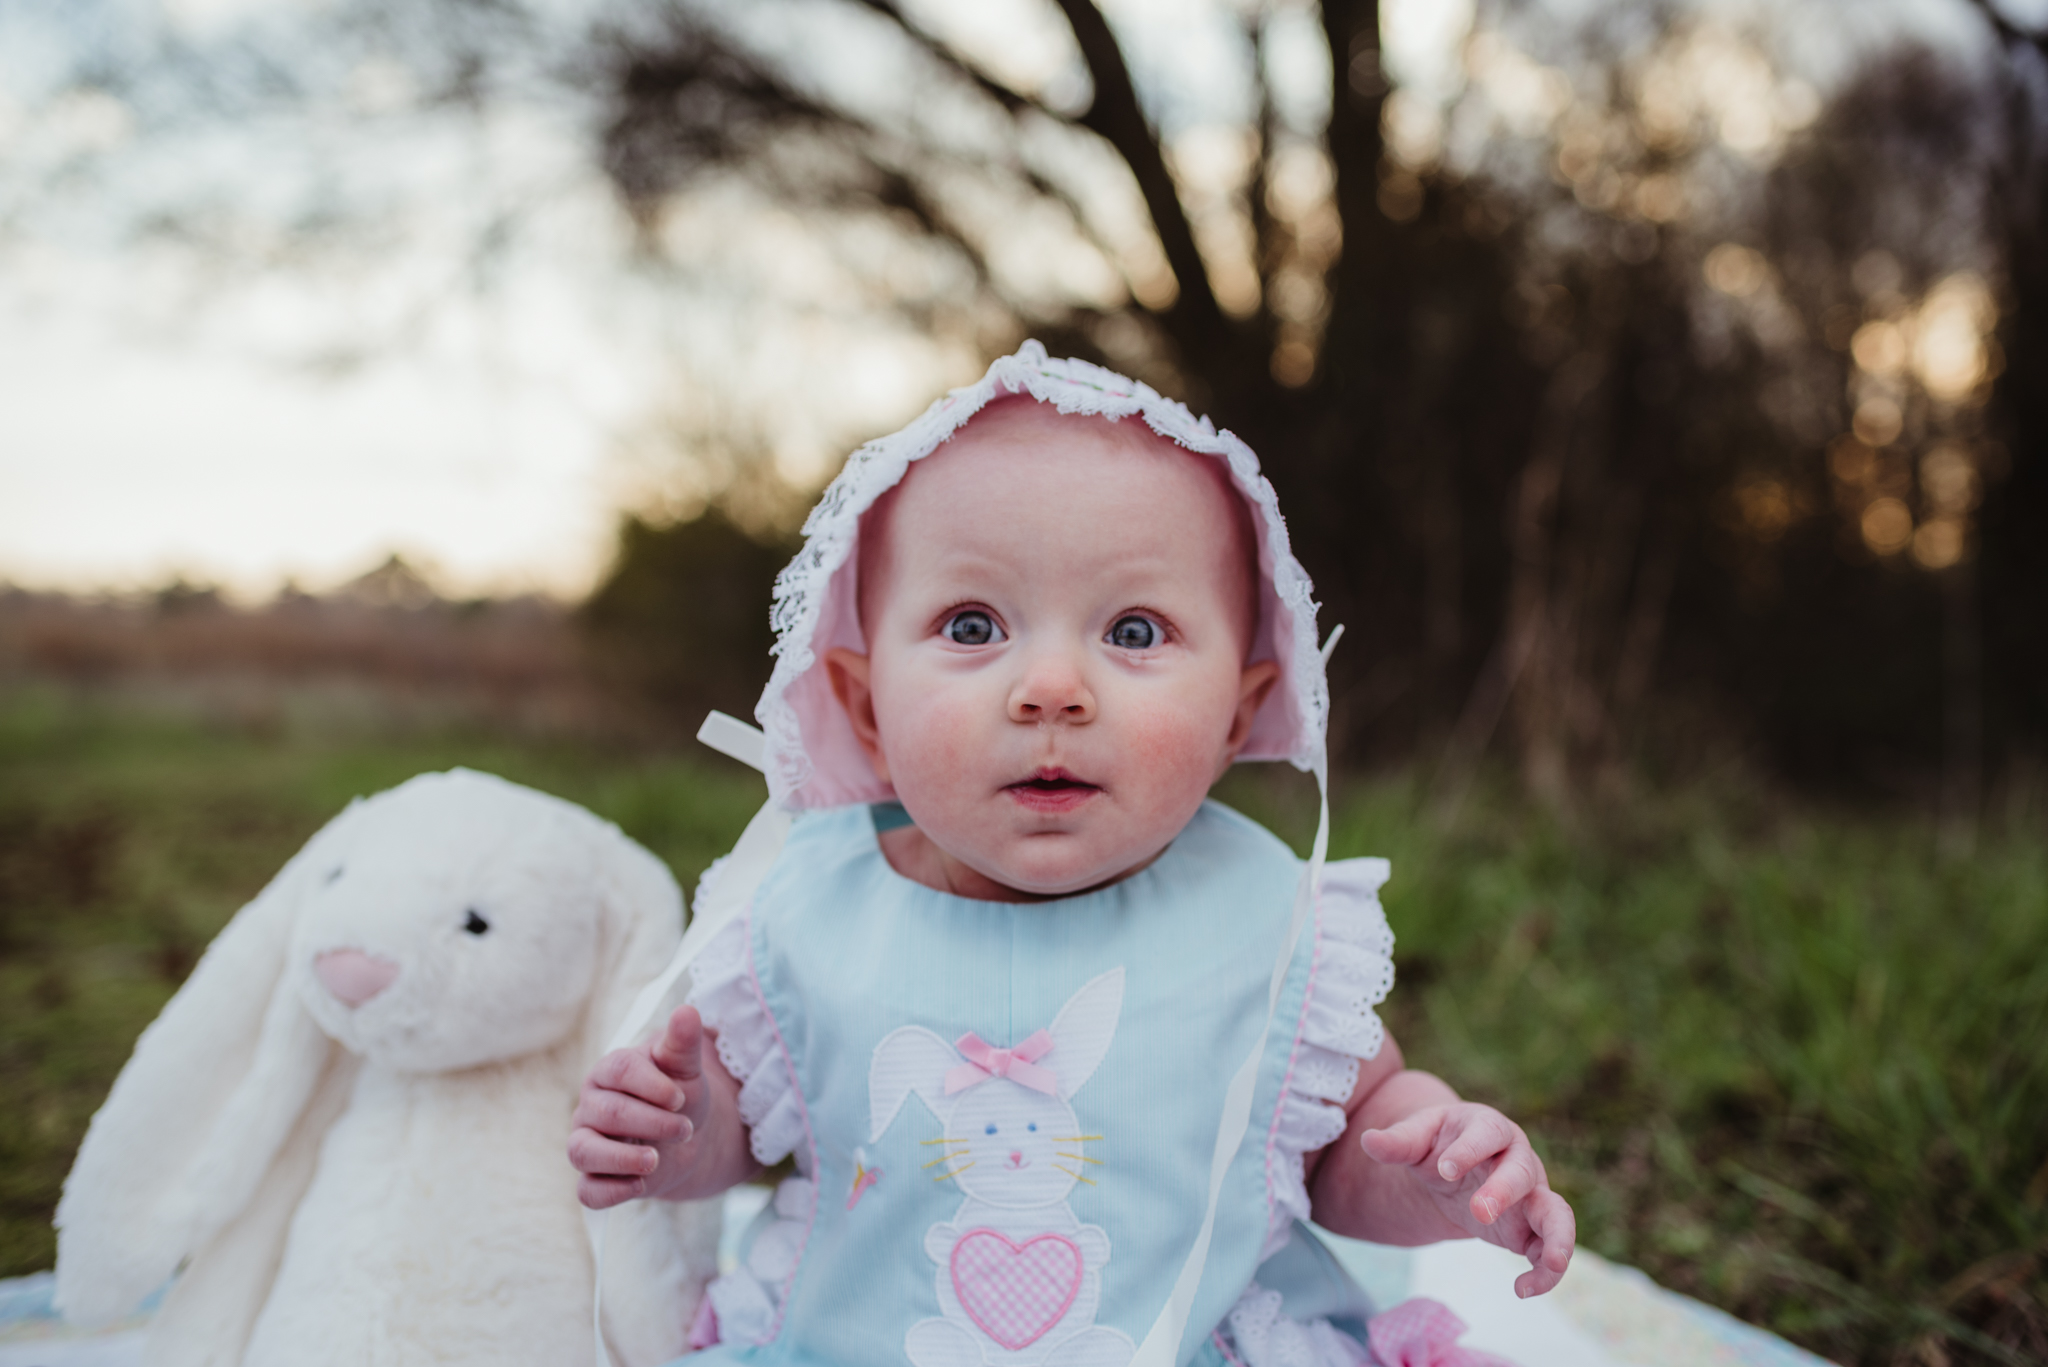 A 9-month old sits in her easter bonnet during their family photos with Rose Trail Images at Horseshoe Farm Park in Wake Forest, NC.